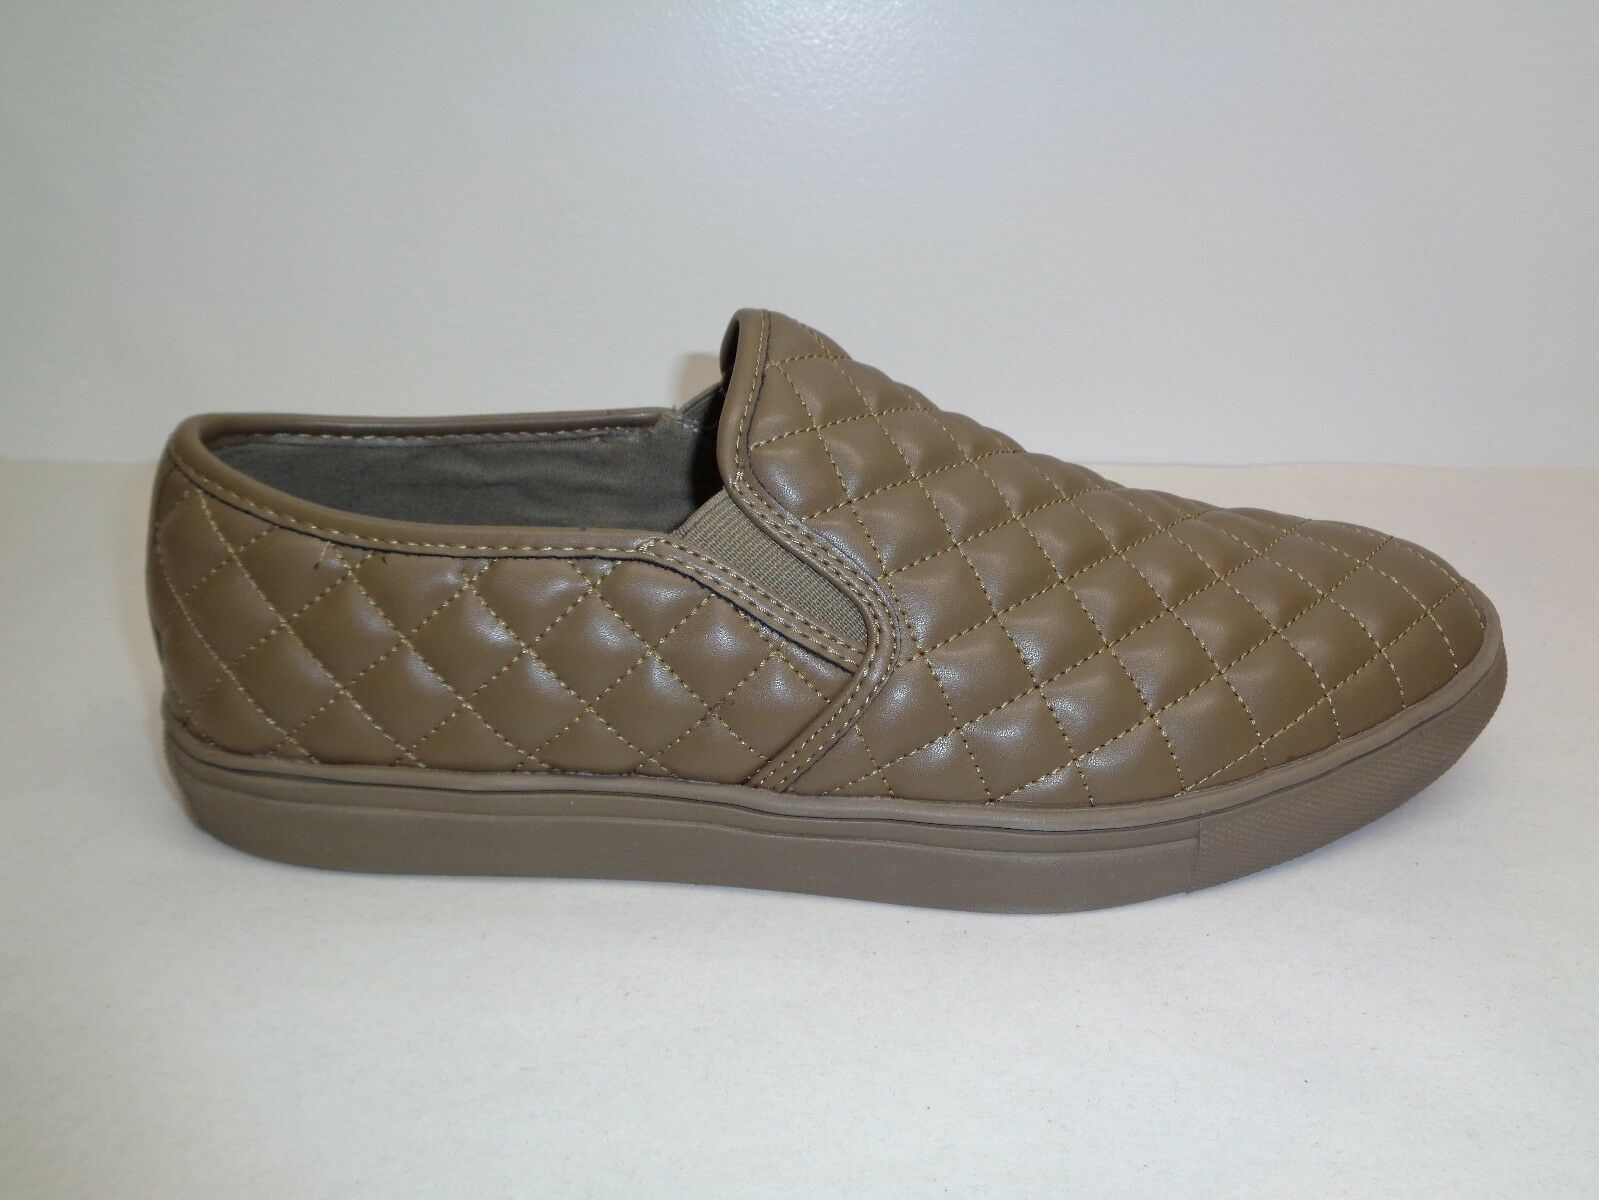 Steve Madden Size 13 M ELEMENT Olive Slip On Loafers Sneakers New Mens shoes